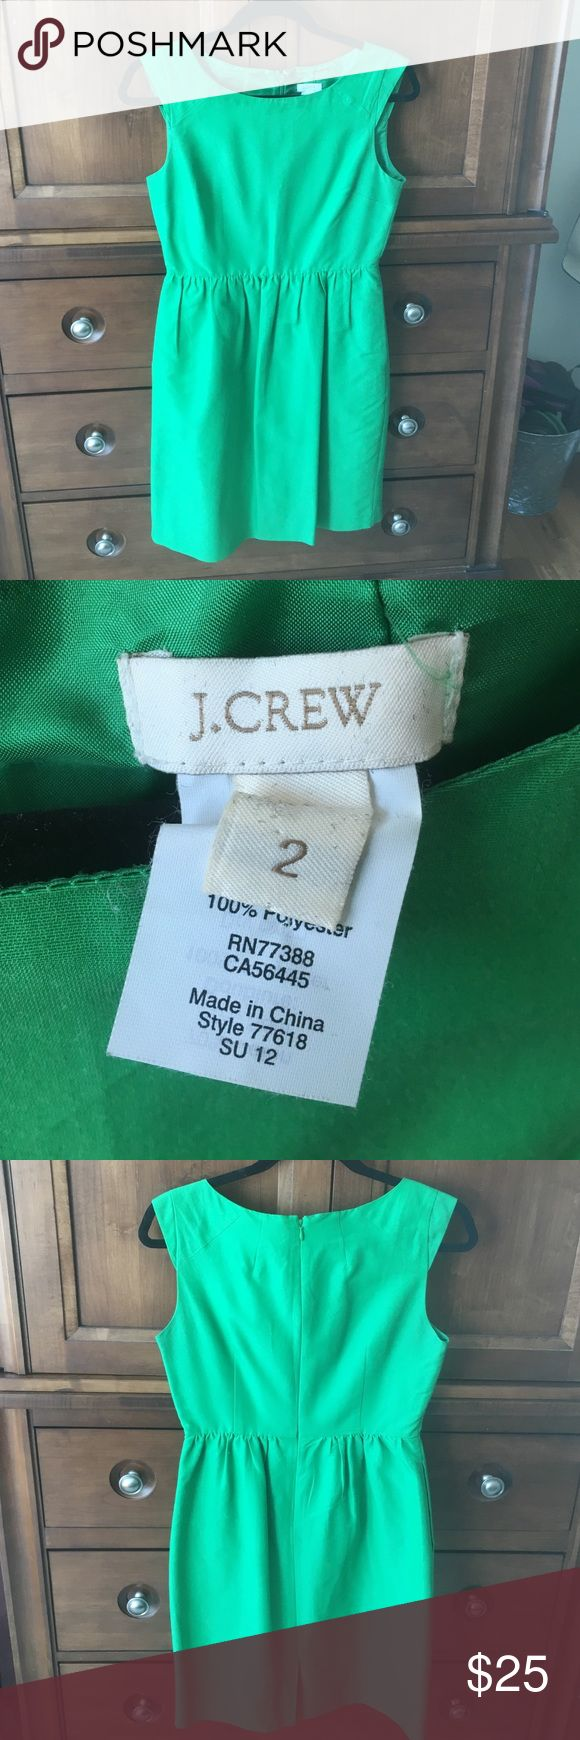 J Crew Kelly Green Dress with Pockets Size 2 J Crew Kelly Green Dress with Pockets Size 2. Amazing pleated dress, perfect for spring. Gently worn. J. Crew Dresses